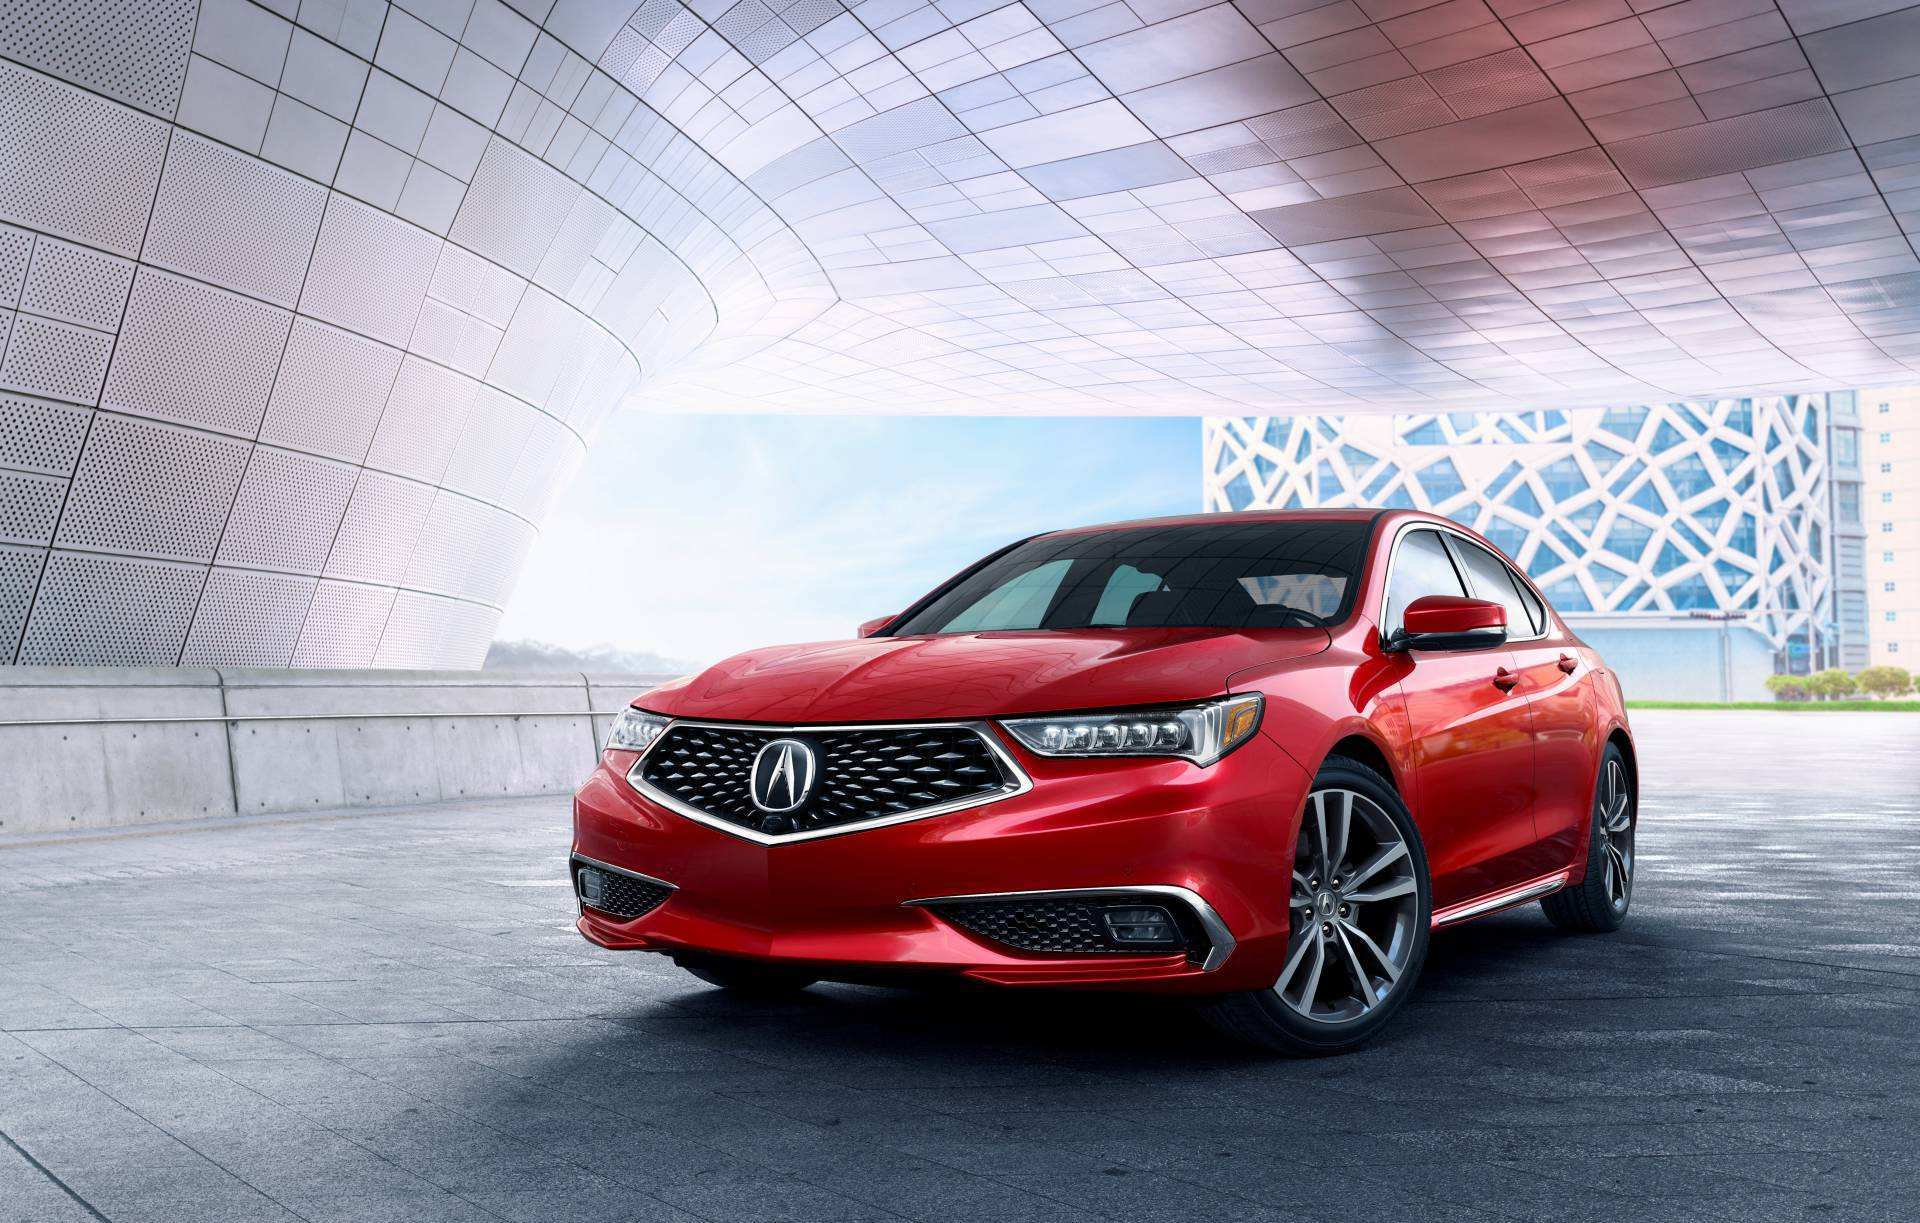 58 New Acura New Cars 2020 Exterior And Interior